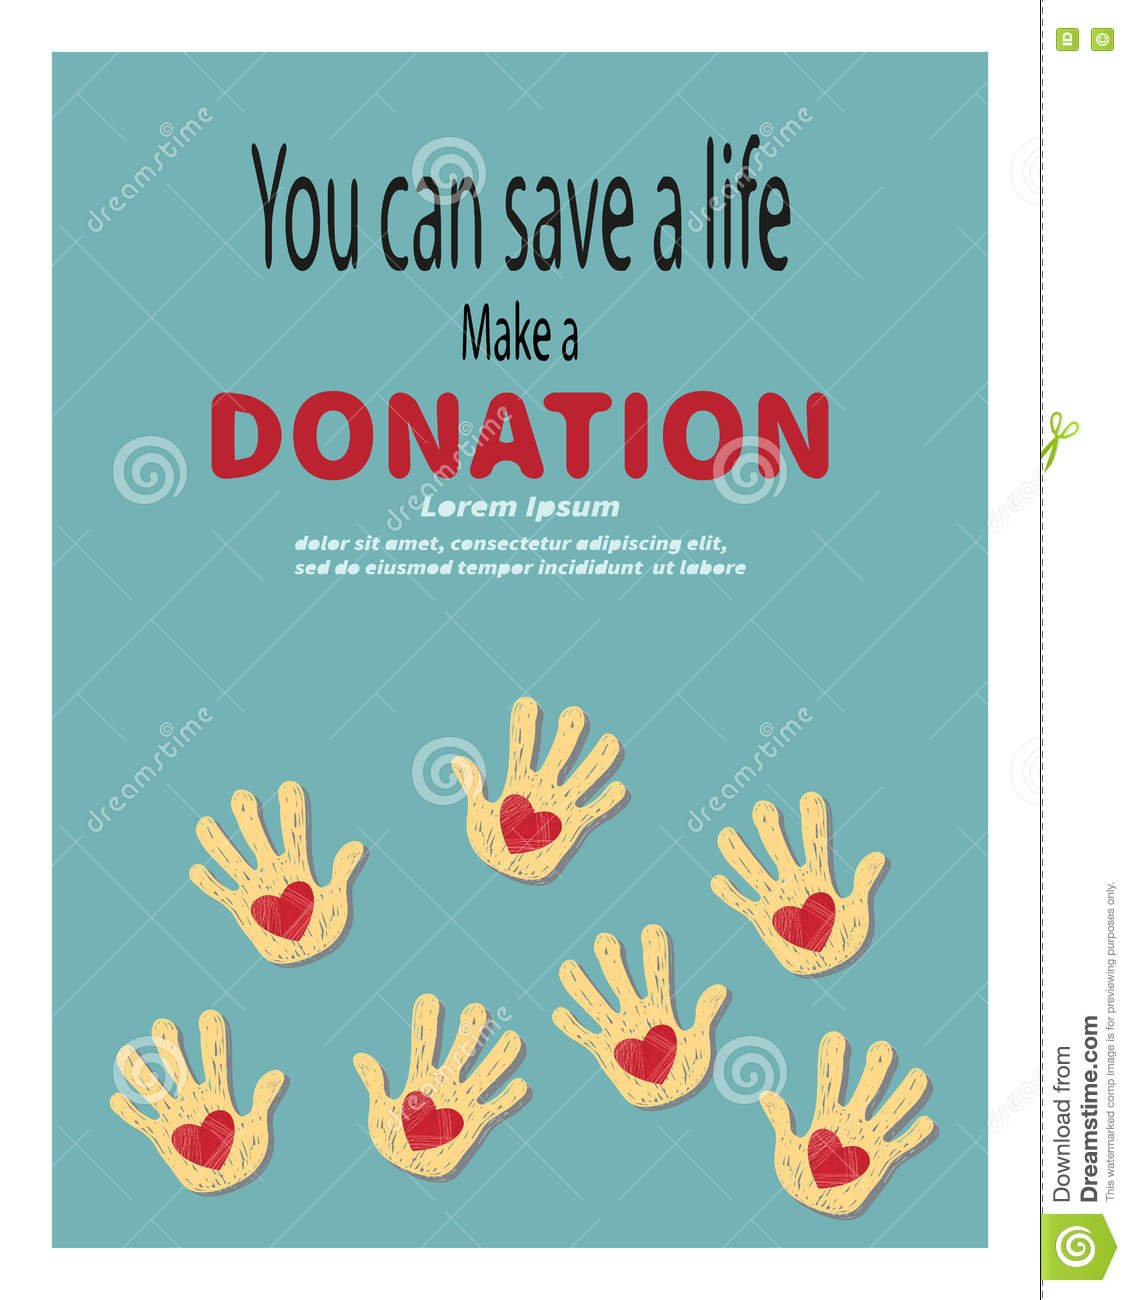 Make a poster design - Make A Donation Vector Illustration Charity And Donation Poster Stock Vector Image 73228120